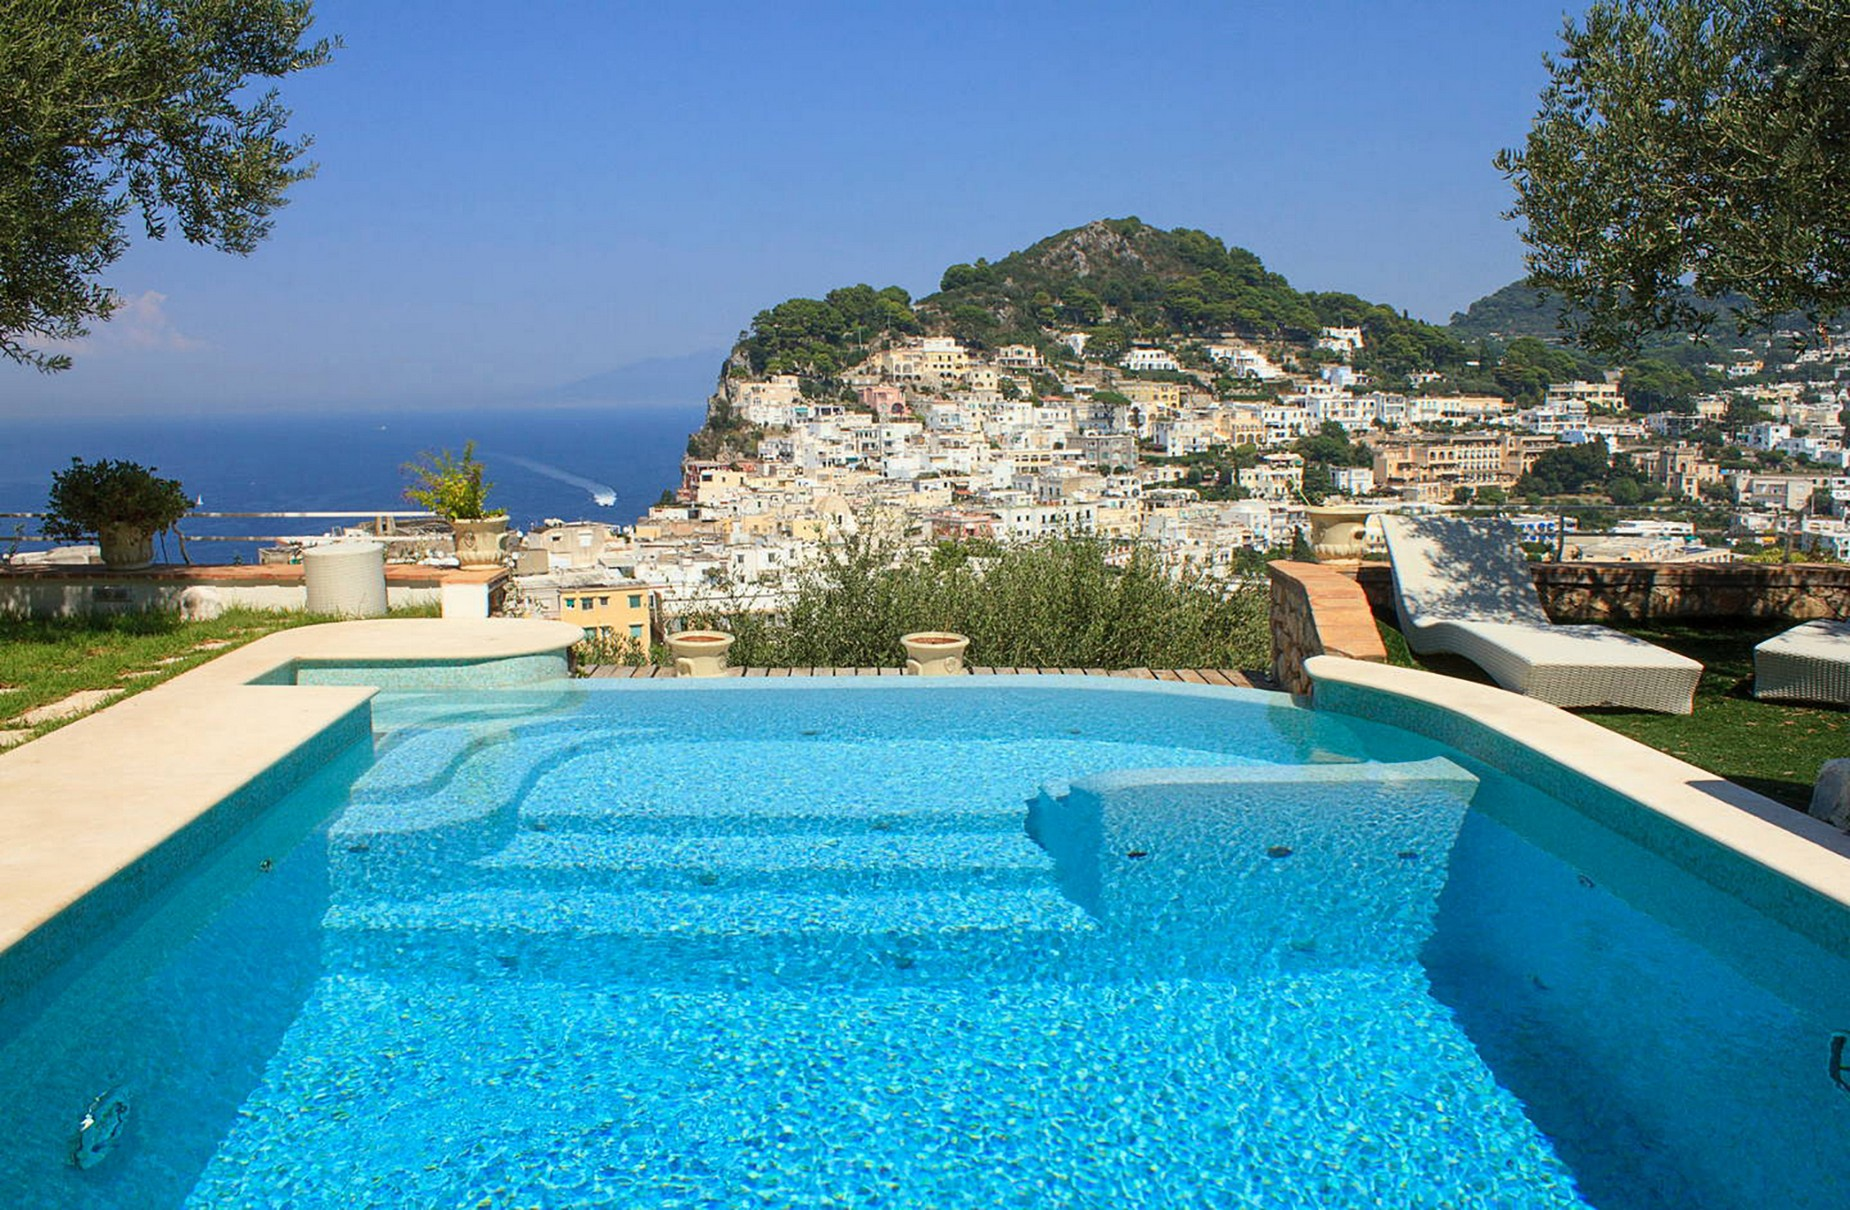 Panoramic Villa with pool in the center of Capri